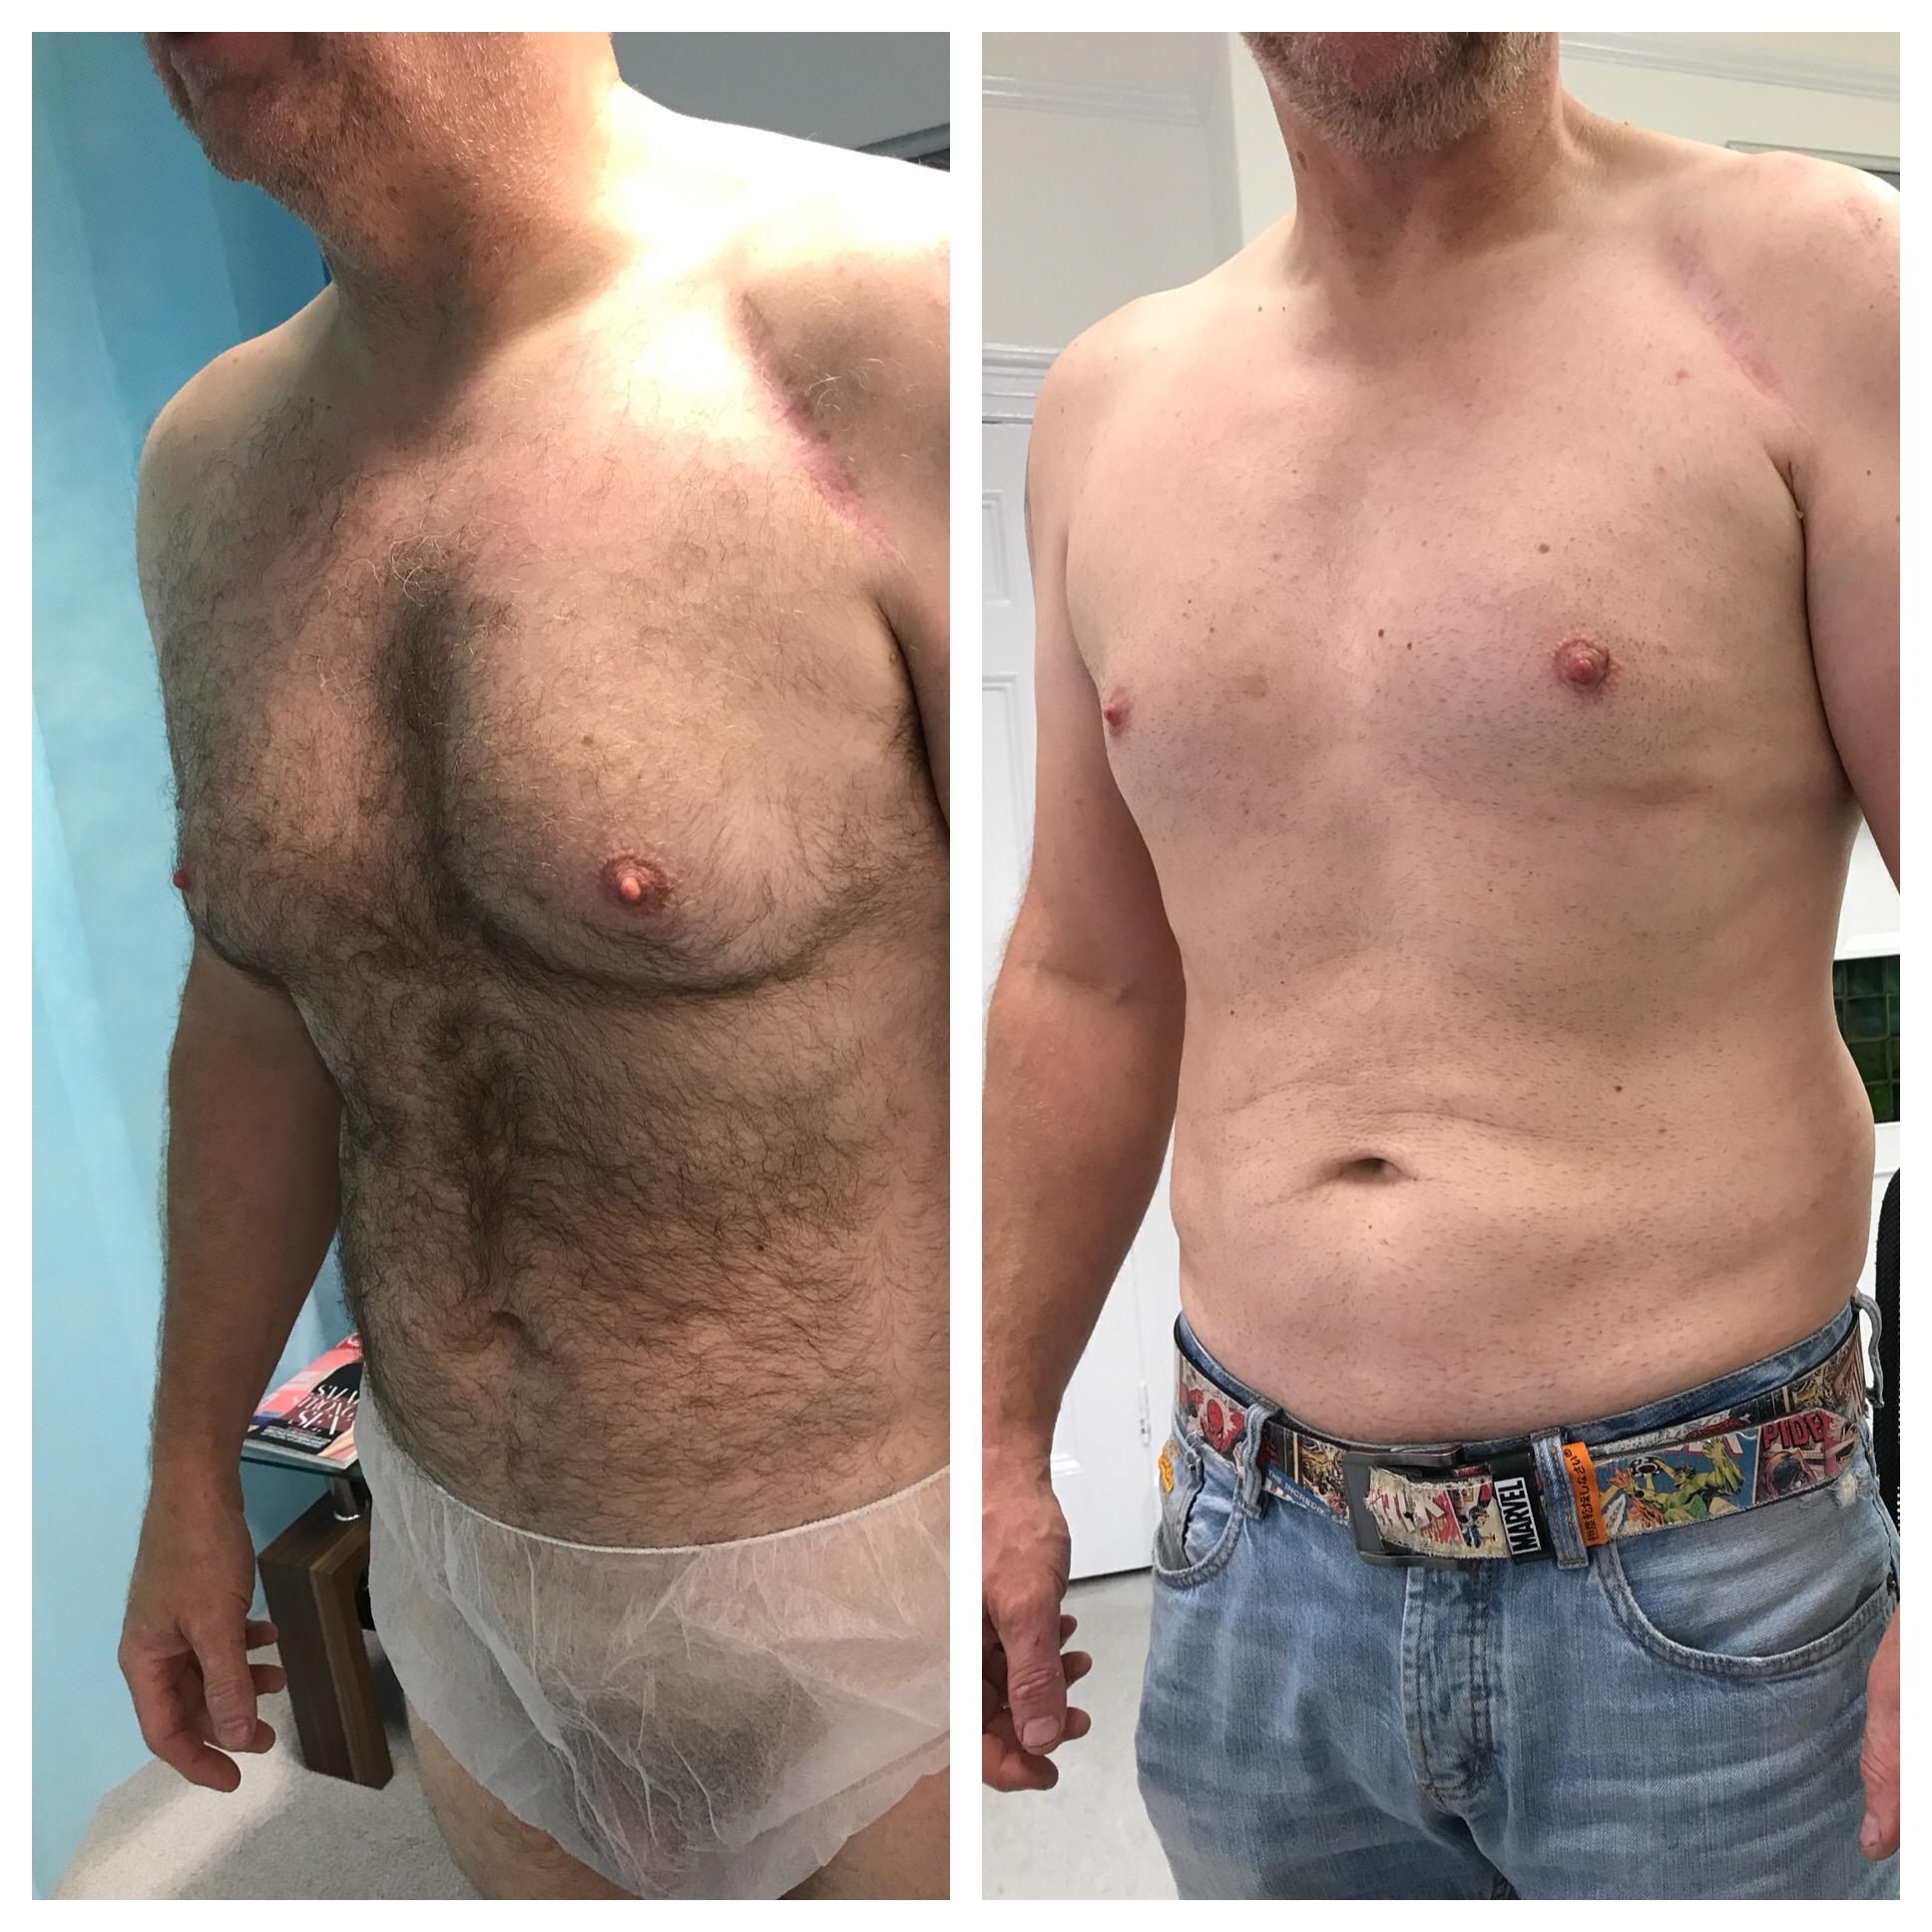 moobs post op few months